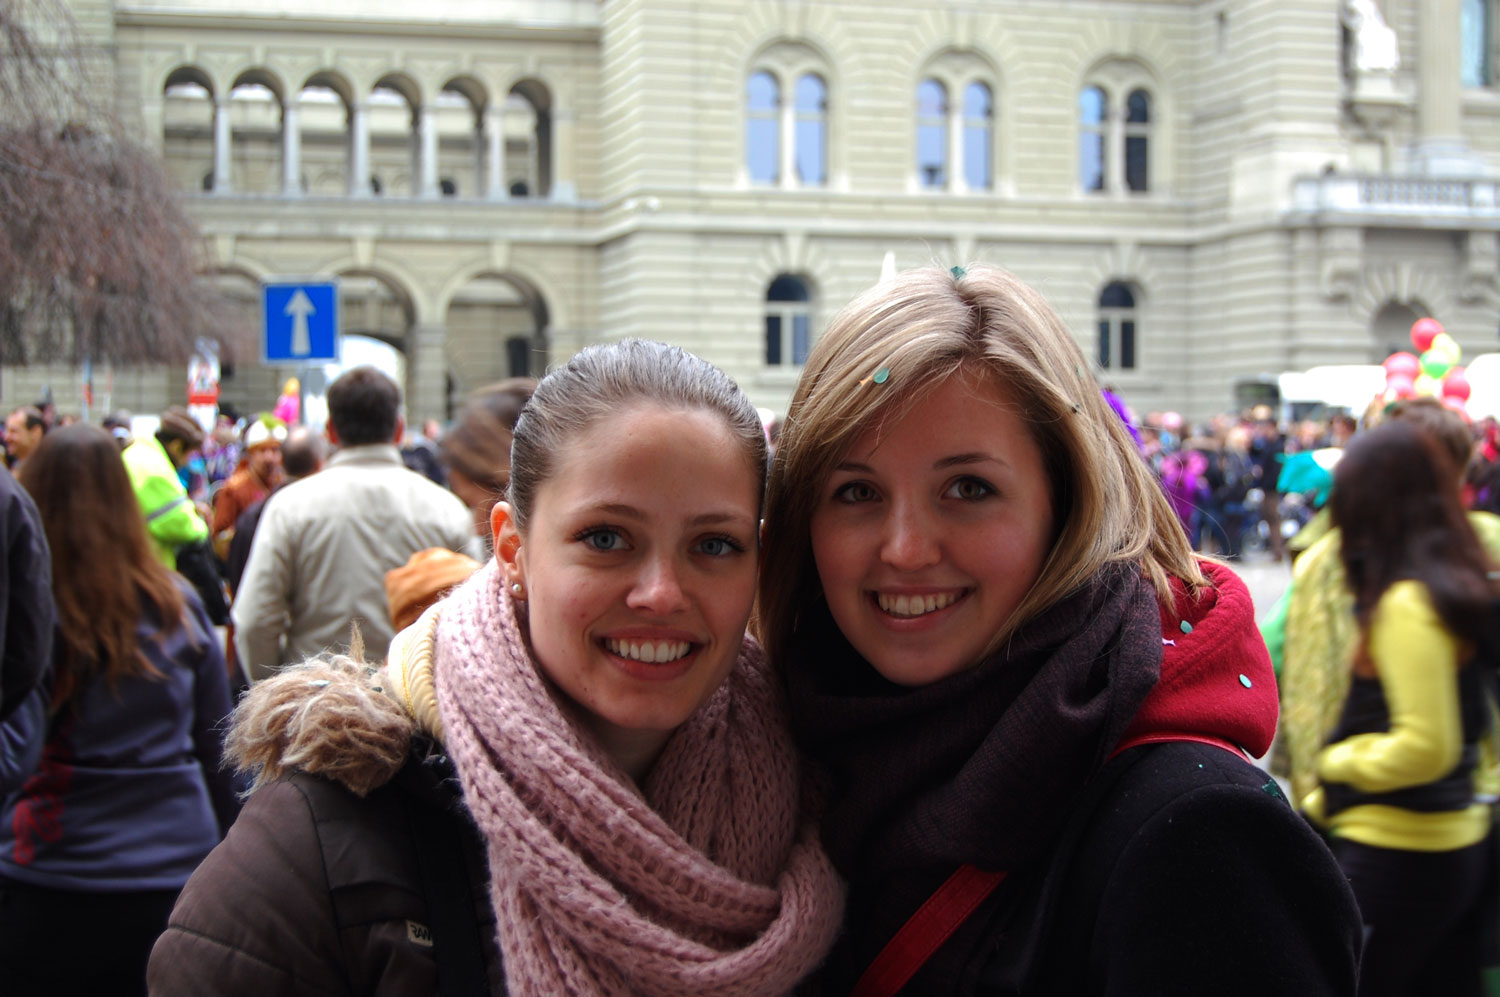 At Carnival with an old friend – Bern, Switzerland